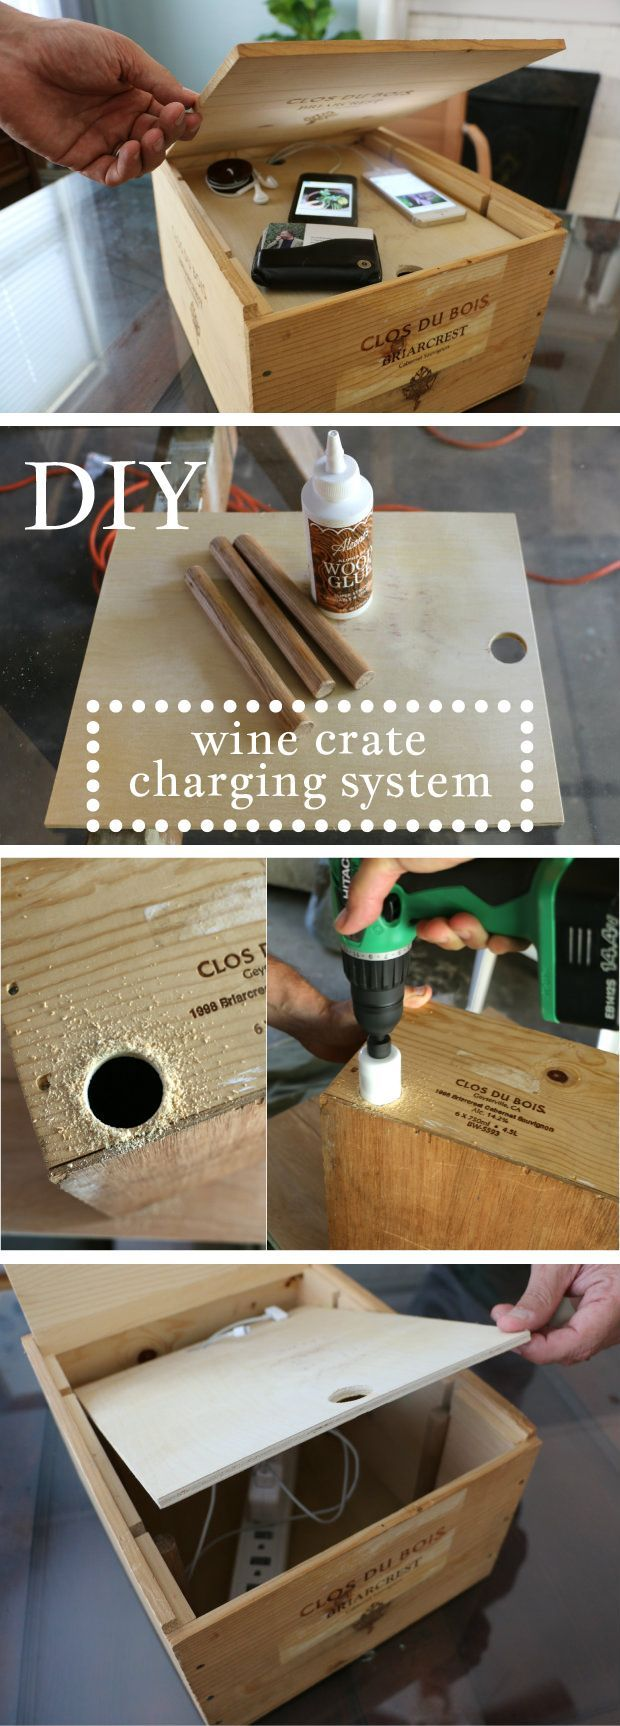 Genius! This is how you get rid of ugly wires and cords all over the living room. A wine crate turned into a hidden charging station! Love this project.  www.ehow.com/...